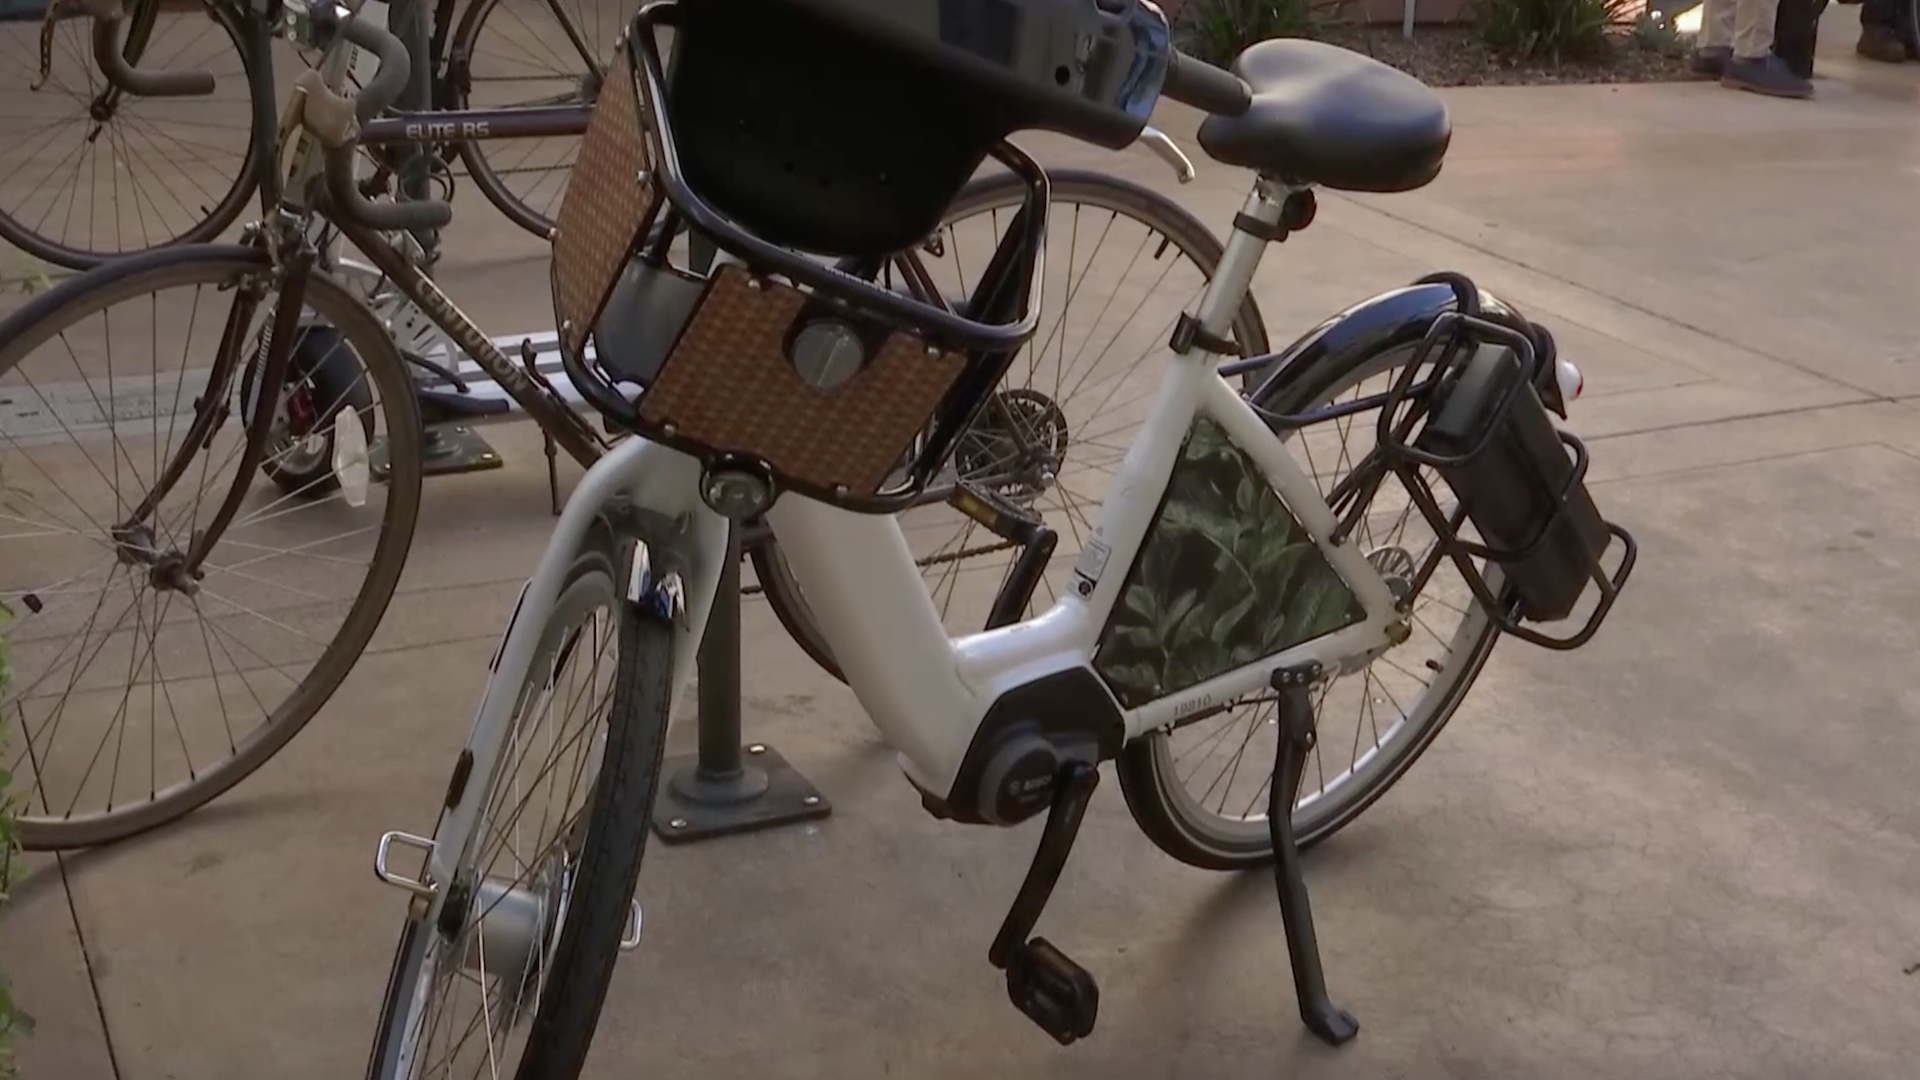 With electric bike sharing program approved, SB's State Street keeps evolving - NewsChannel 3-12